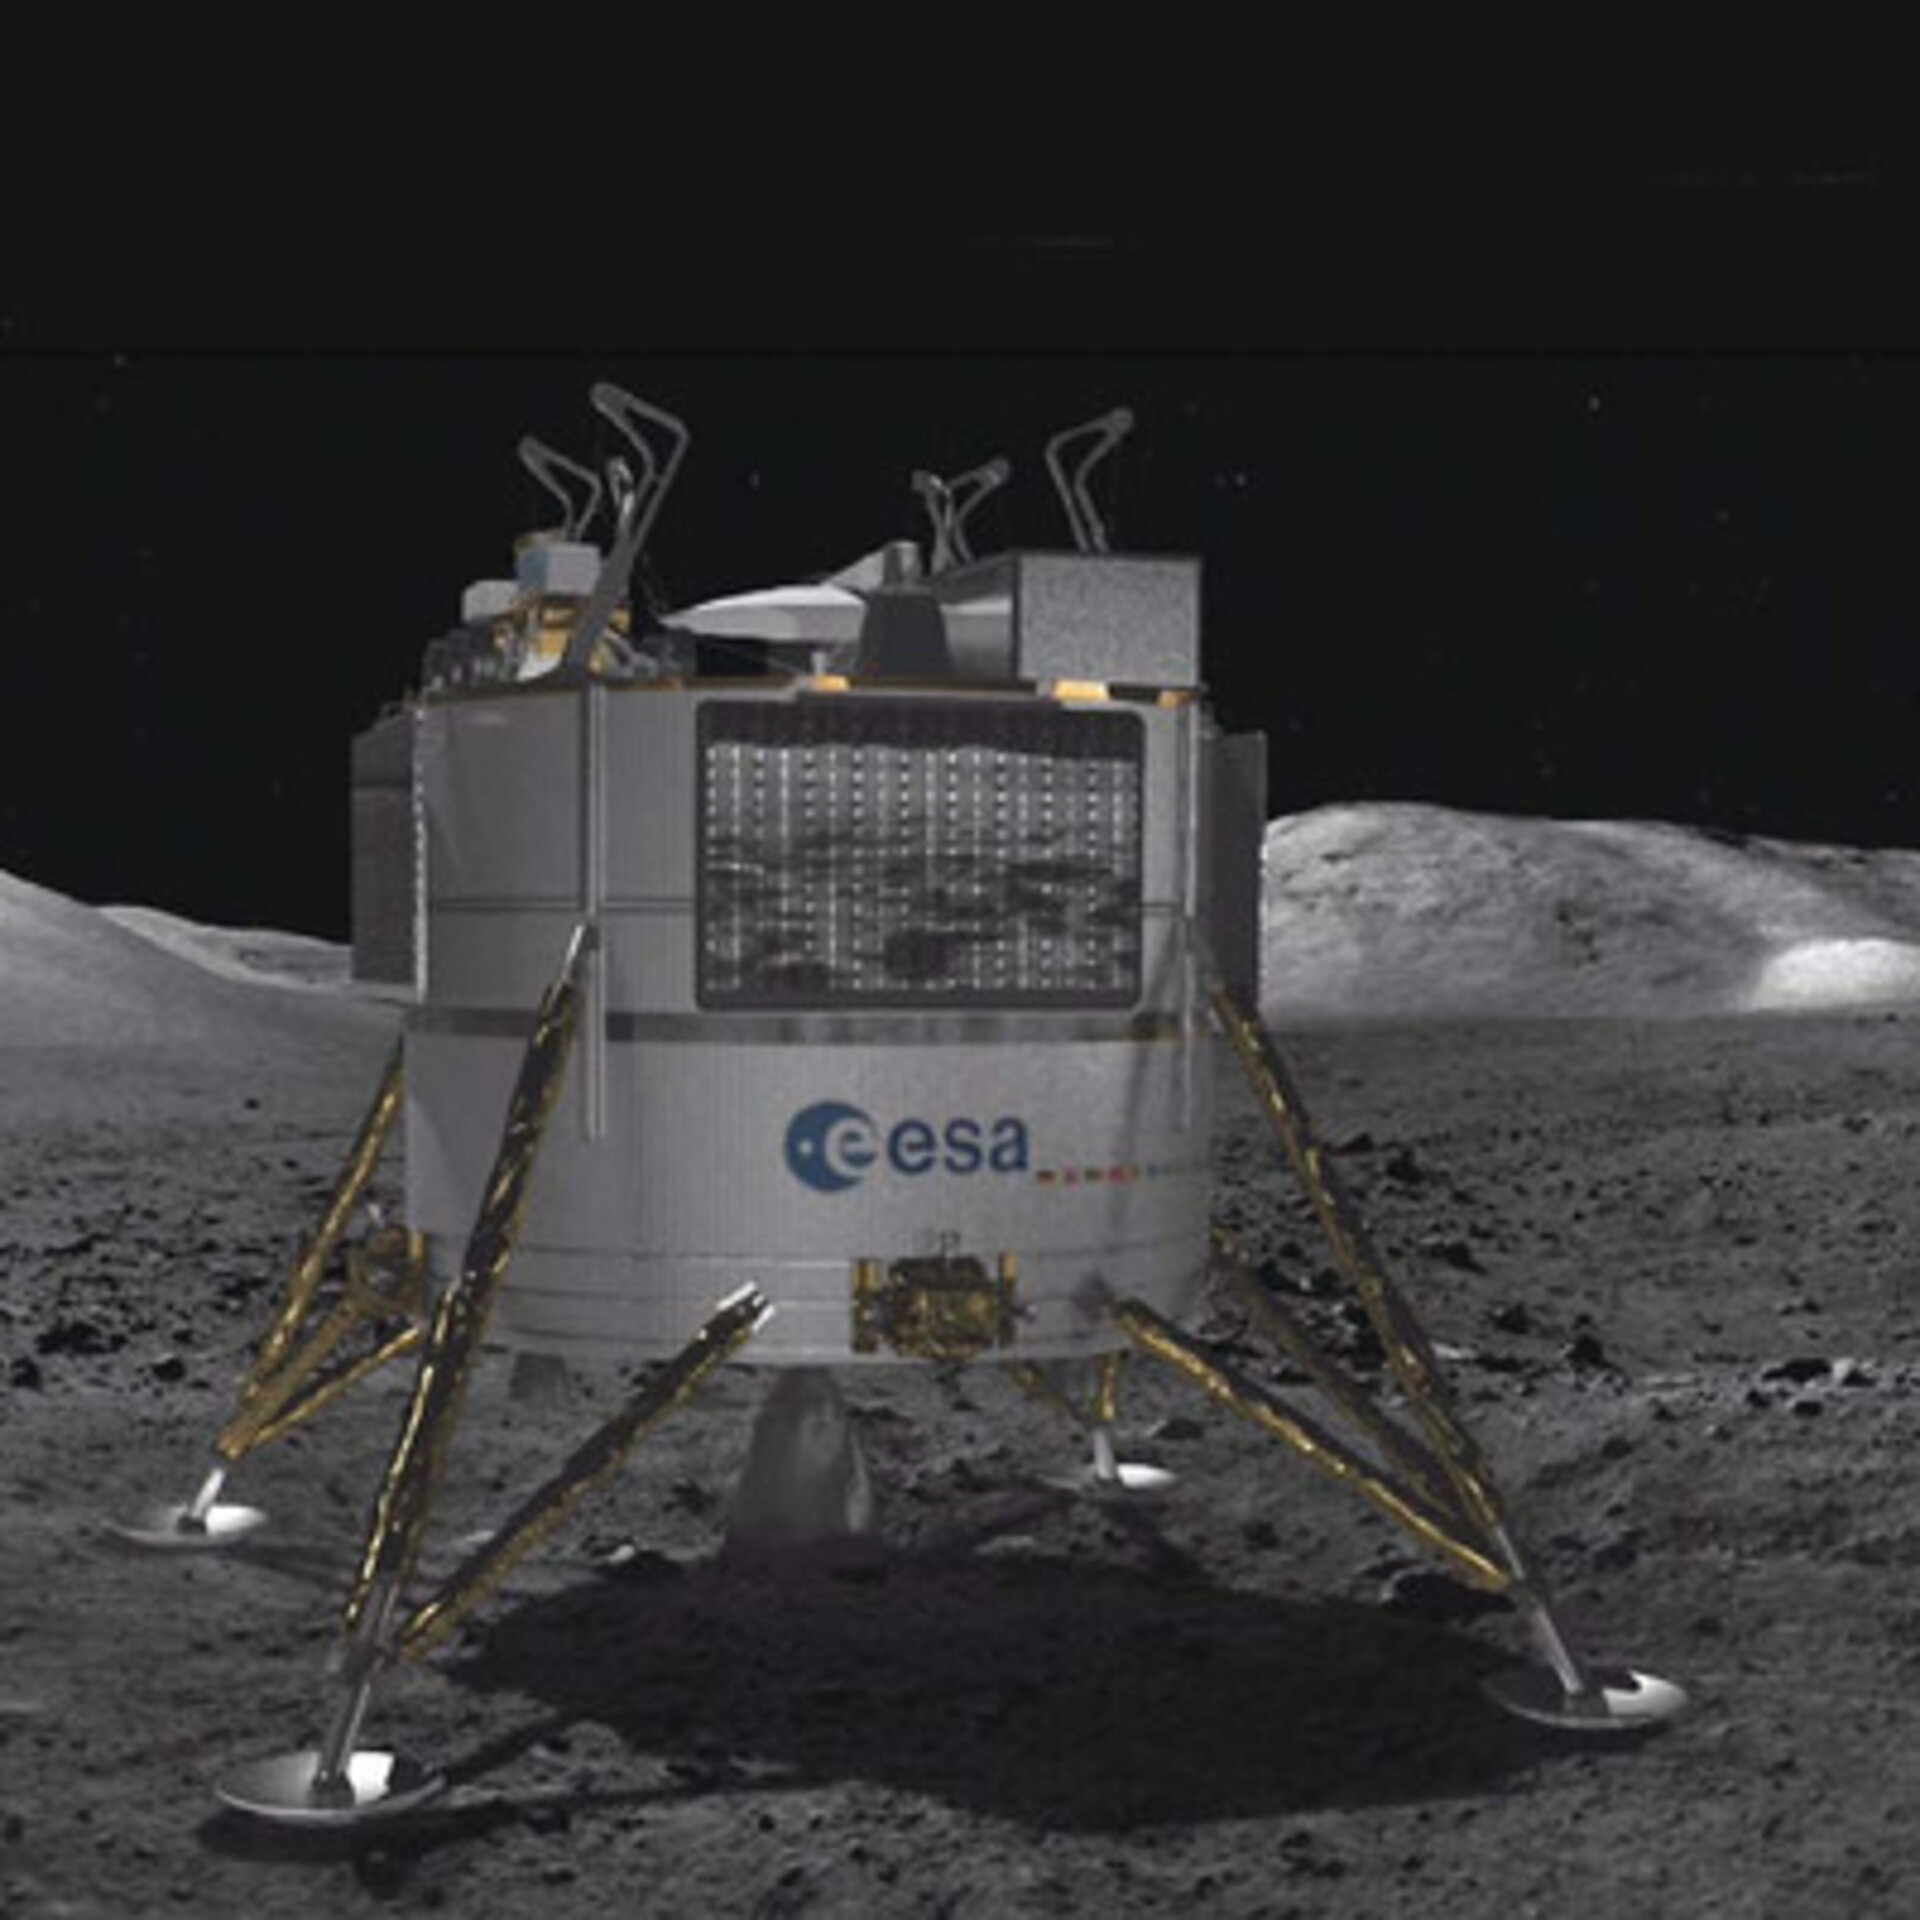 An autonomous lunar lander capable of cargo and logistics delivery would significantly extend surface exploration opportunities